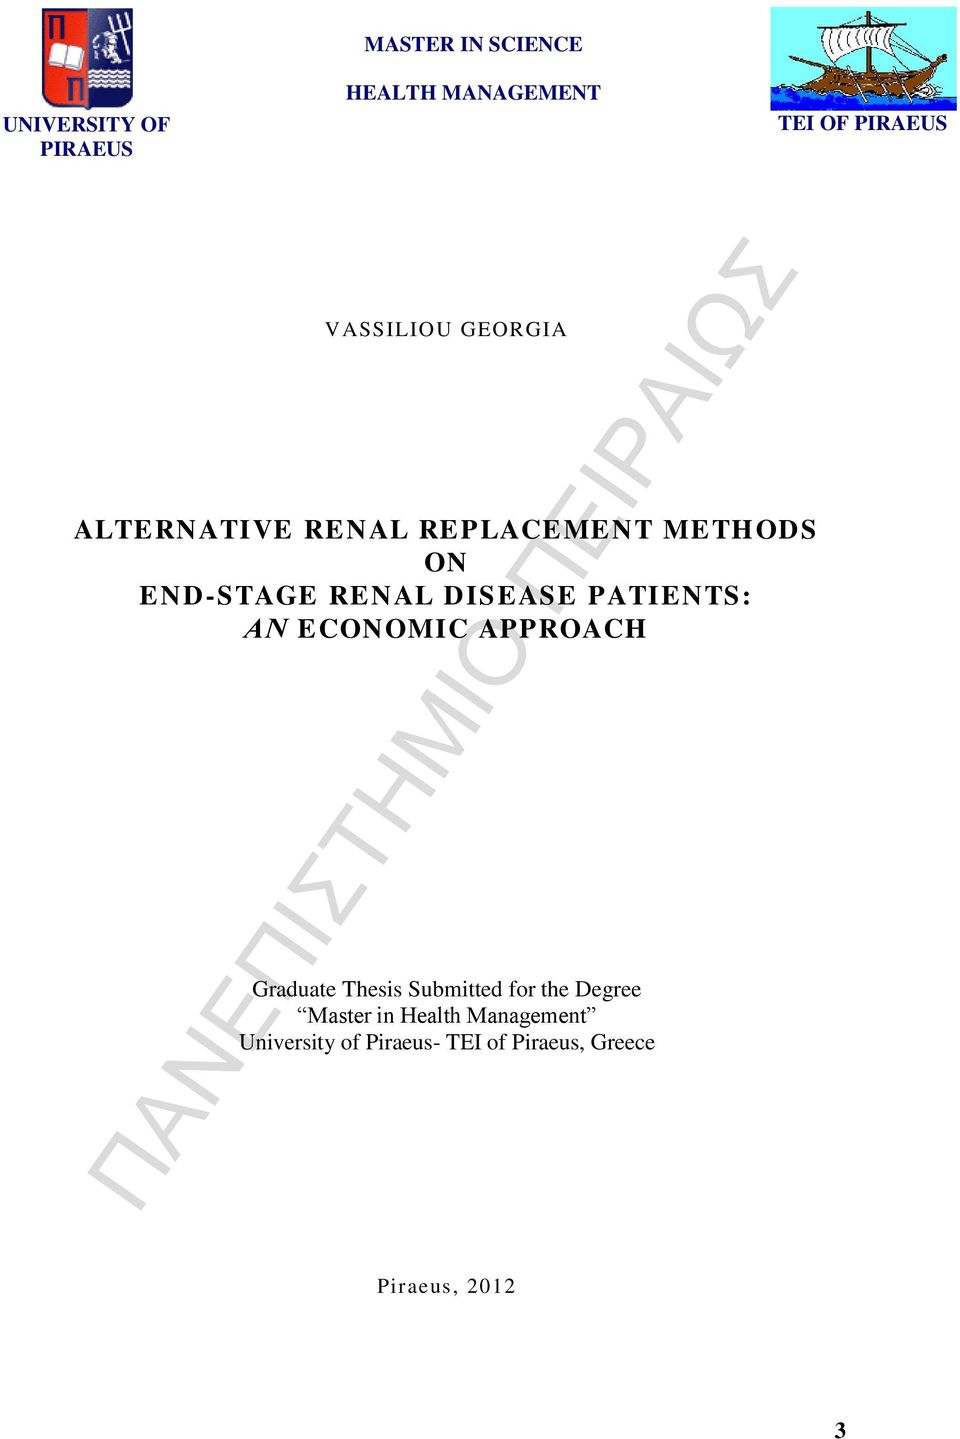 DISEASE PATIENTS: ΑΝ ECONOMIC APPROACH Graduate Thesis Submitted for the Degree